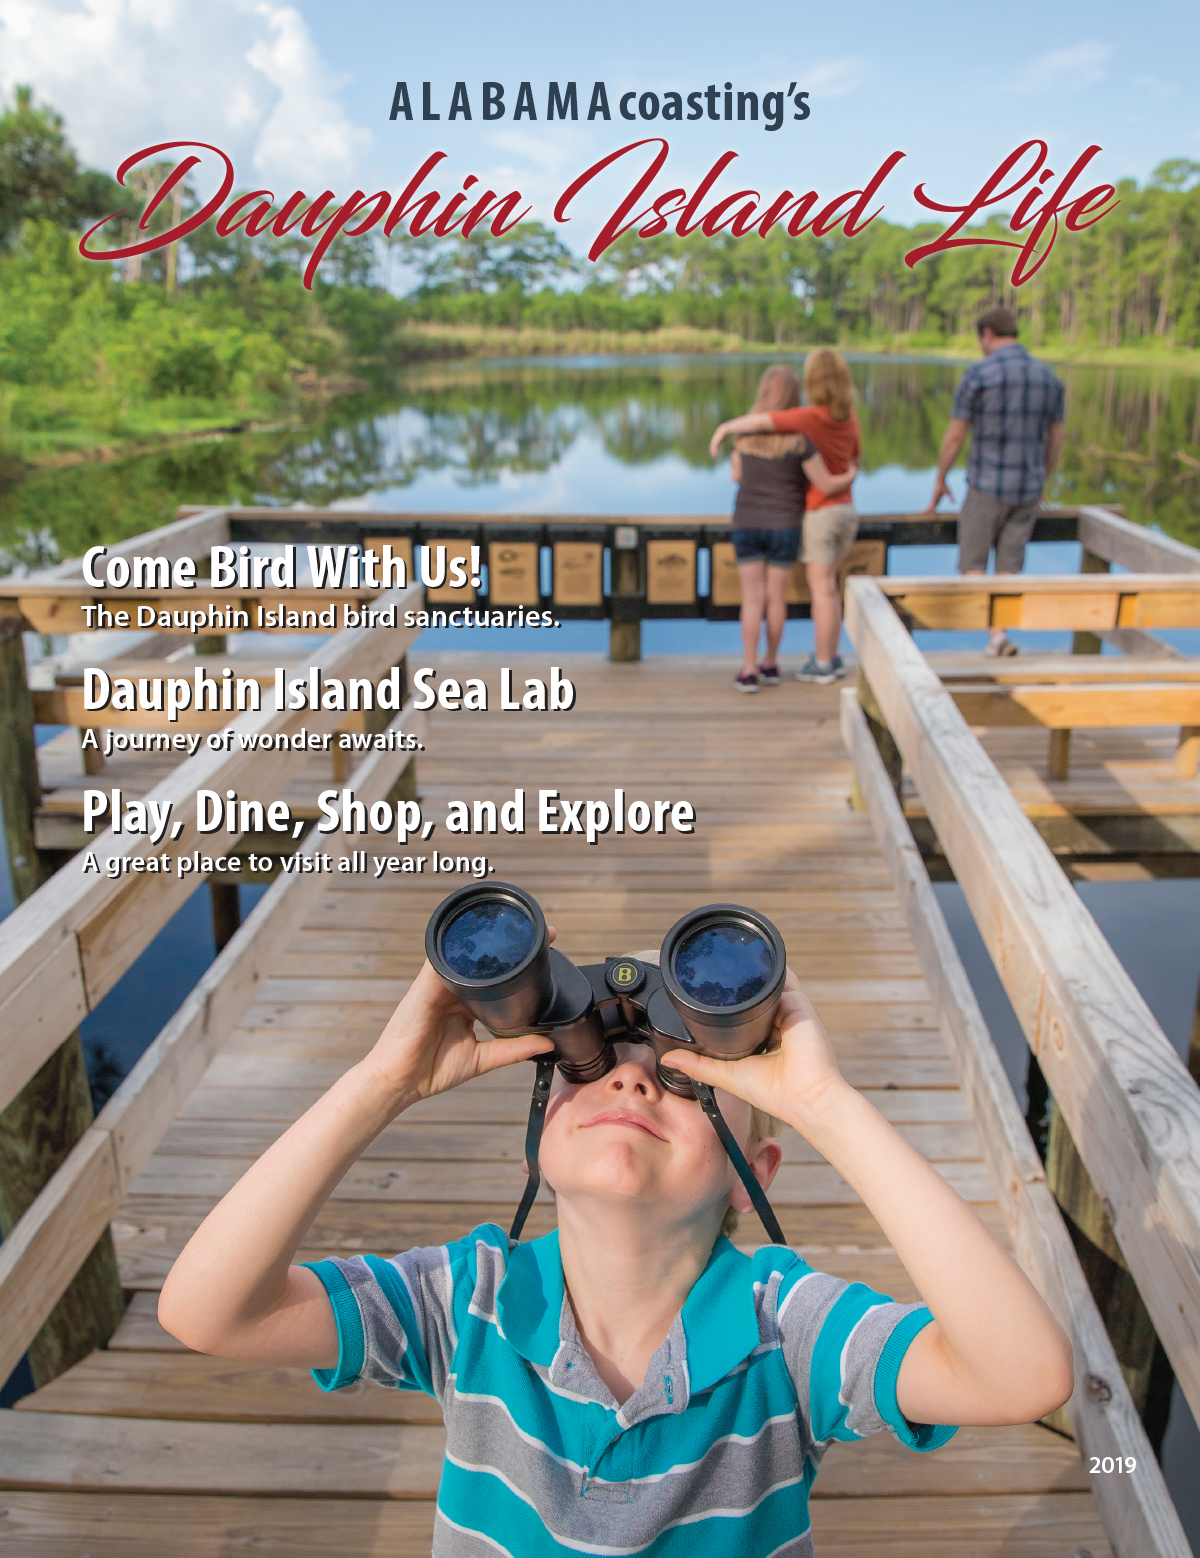 thumbnail of Dauphin Island Life magazine cover